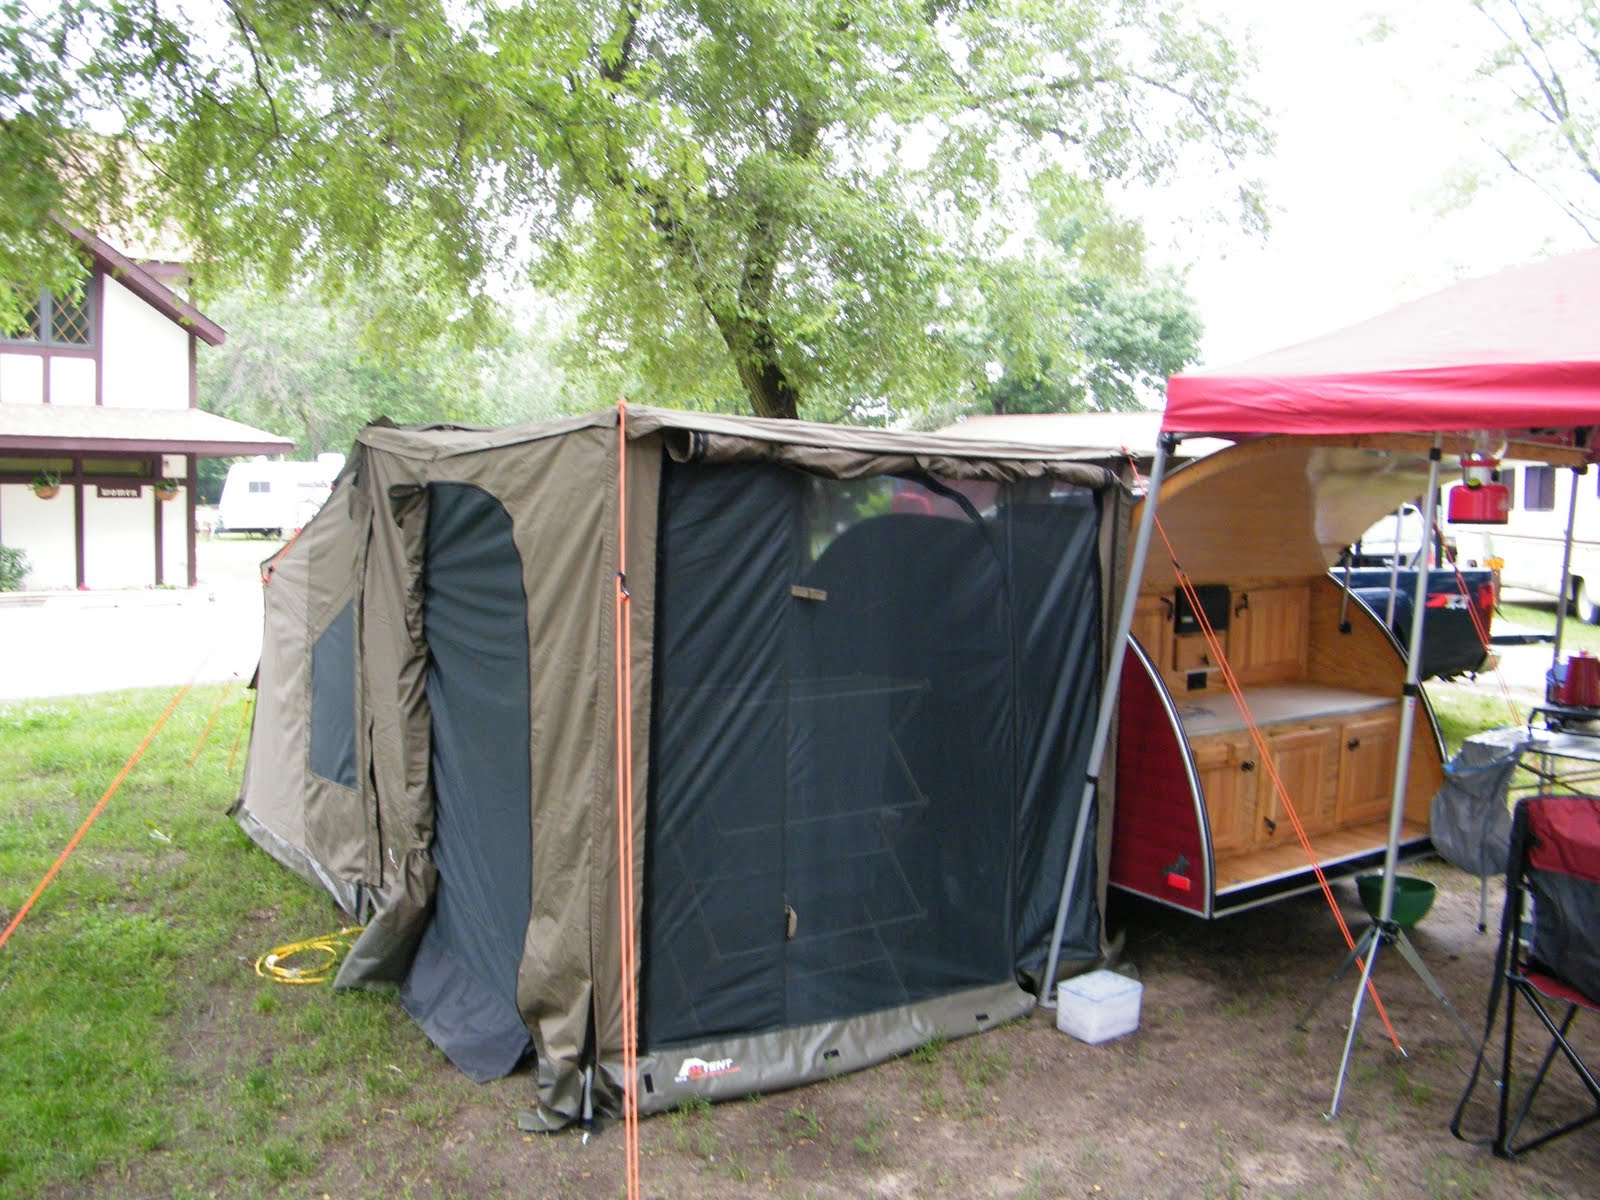 Teardrop Trailer C&ing with a 30 Second OzTent & Family Tent Camping : Teardrop Trailer Camping with a 30 Second OzTent